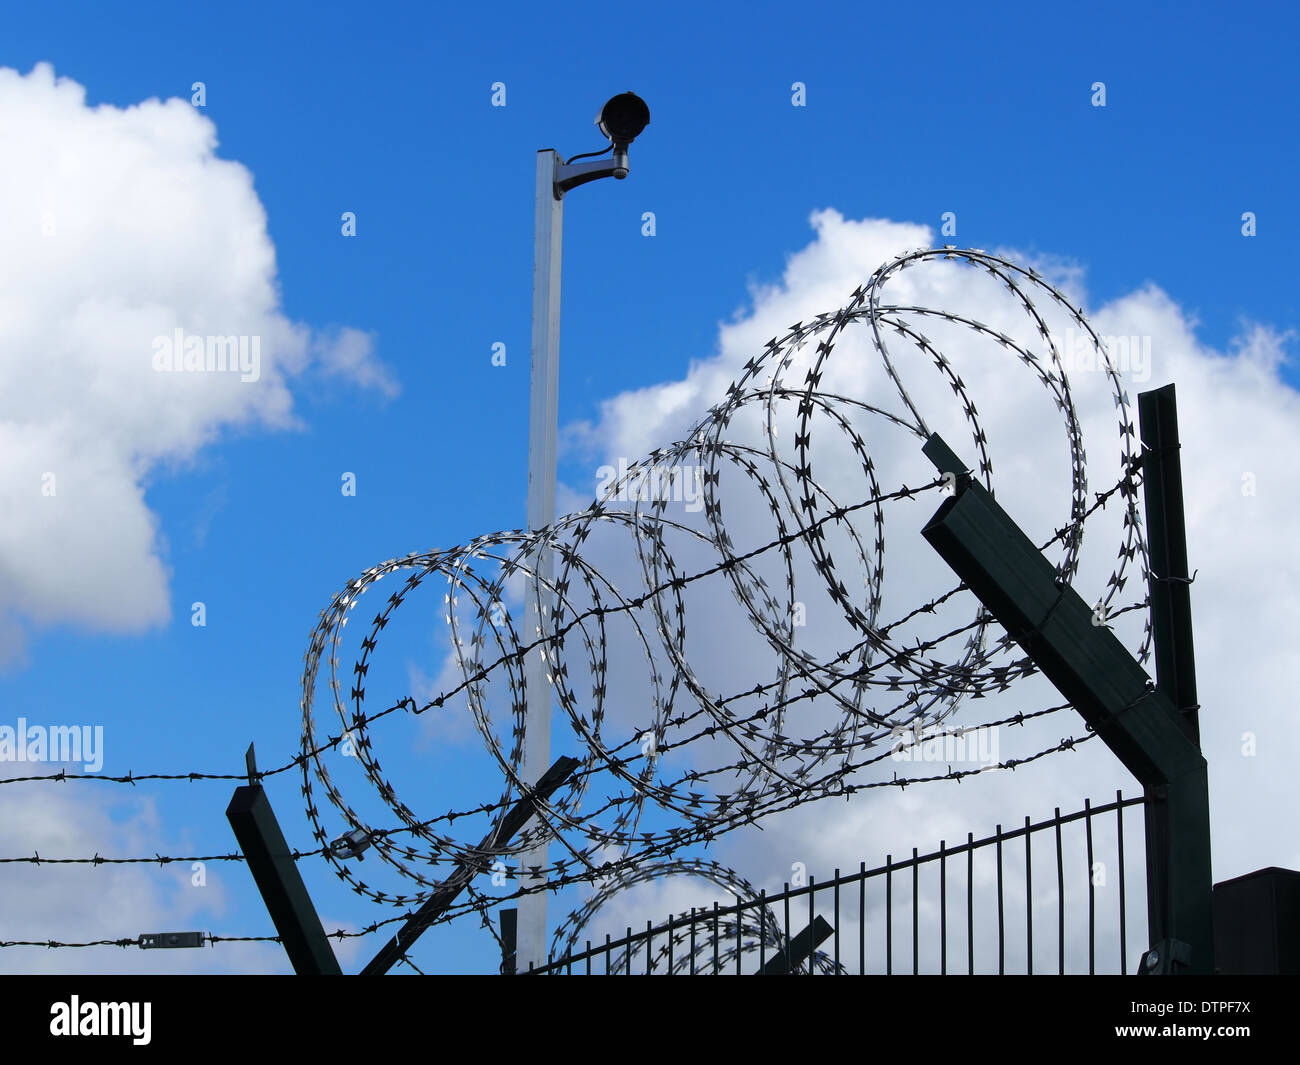 Restricted area - fence with barbed wire and camera - Stock Image